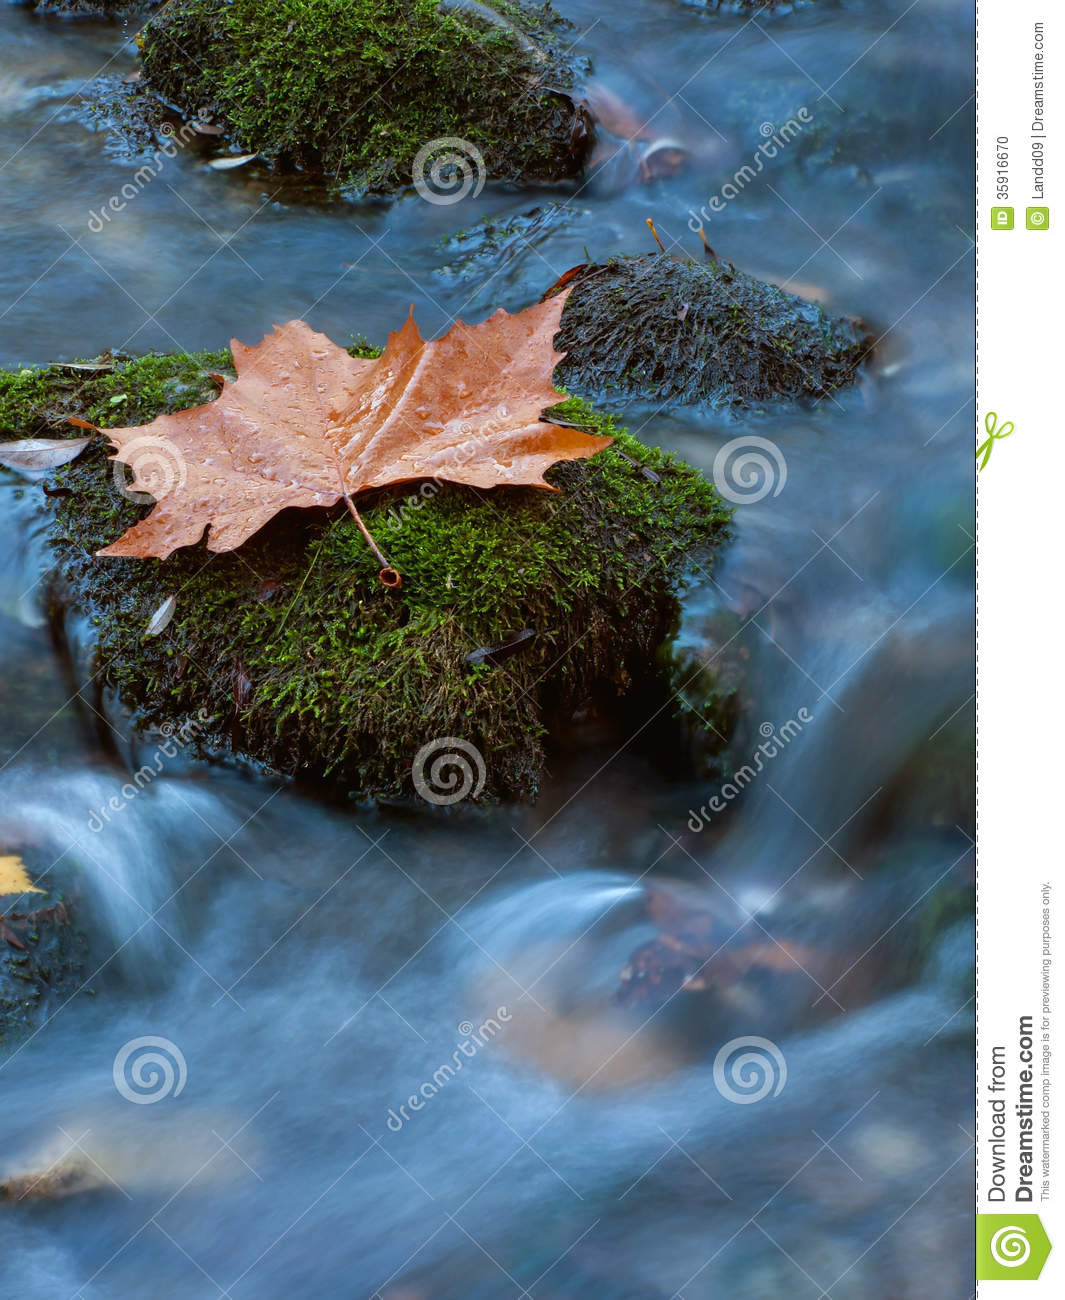 Fall Scenery Wallpapers Free Leaf At The Creek 3 Stock Photo Image Of Droplets